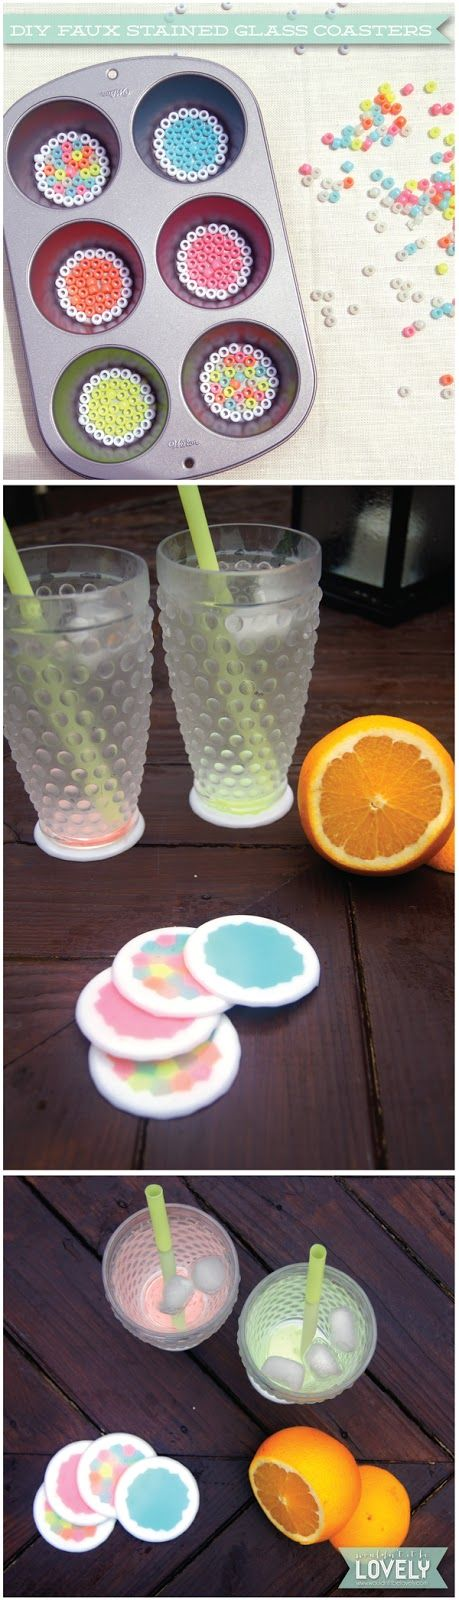 DIY coasters, melted pony beads, easy project, simple crafts, Wouldn't it be Lovely                                                                                                                                                      More